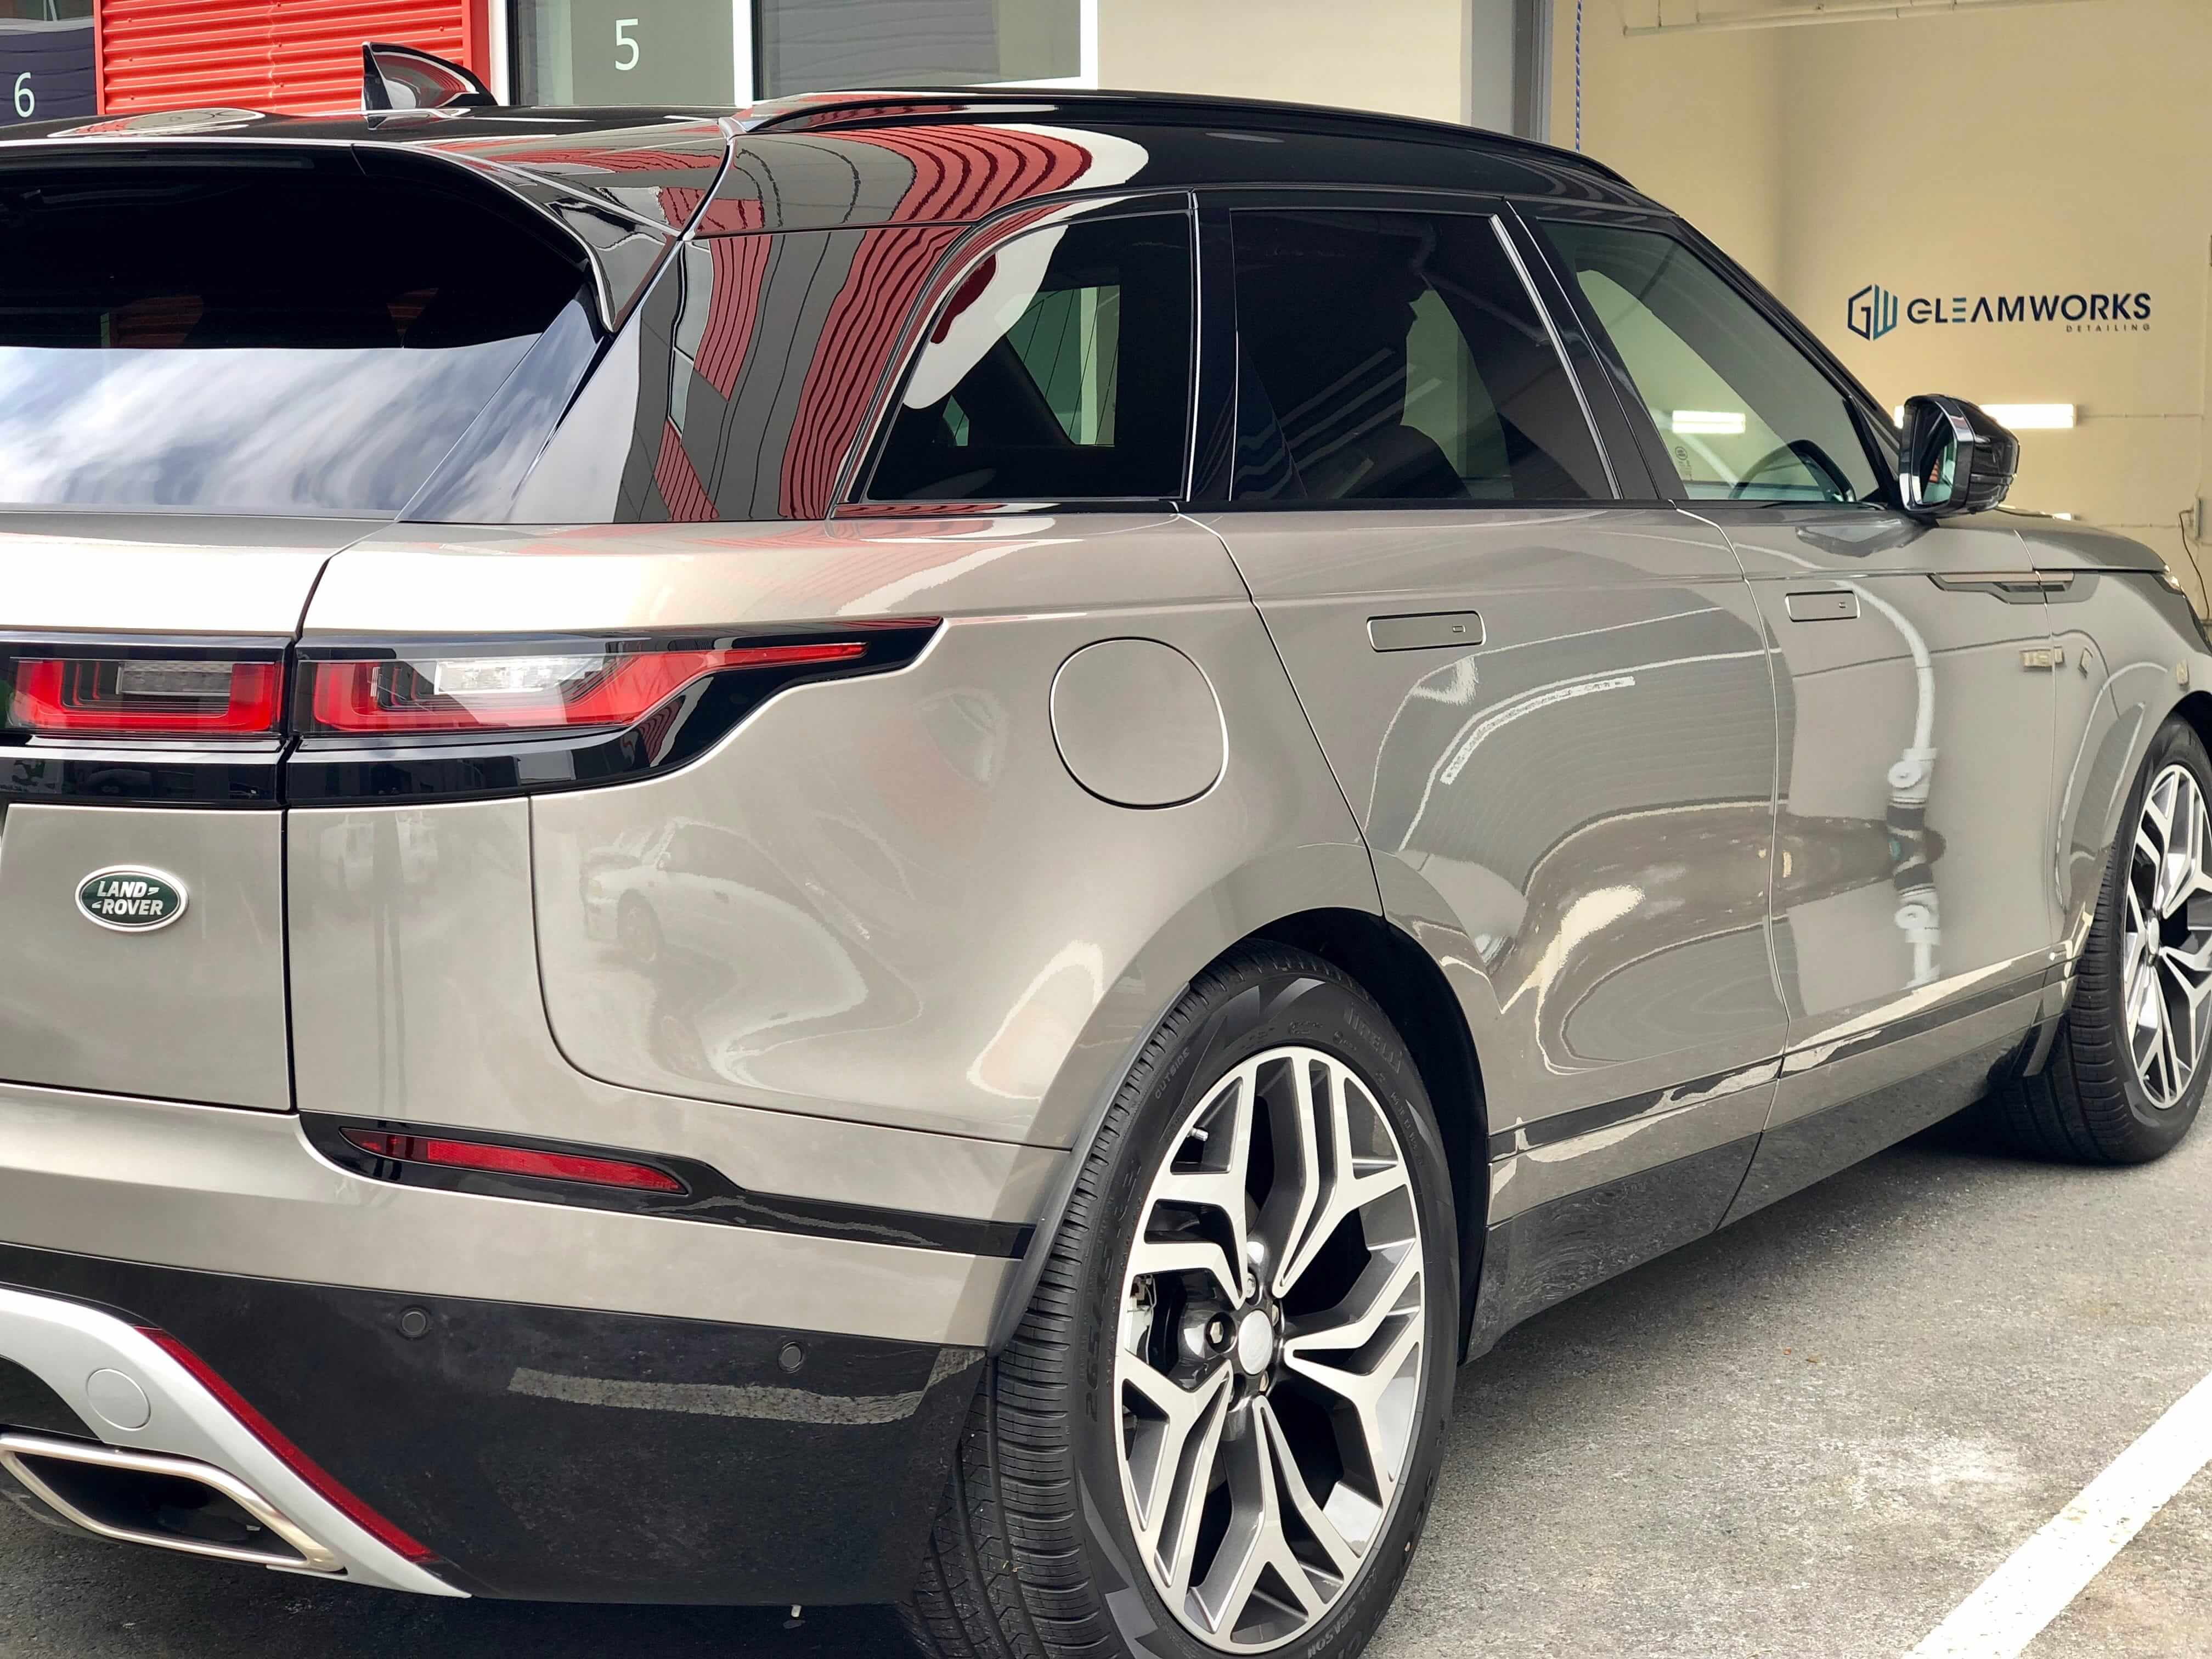 Range Rover with ceramic coating from Gleamworks Detailing